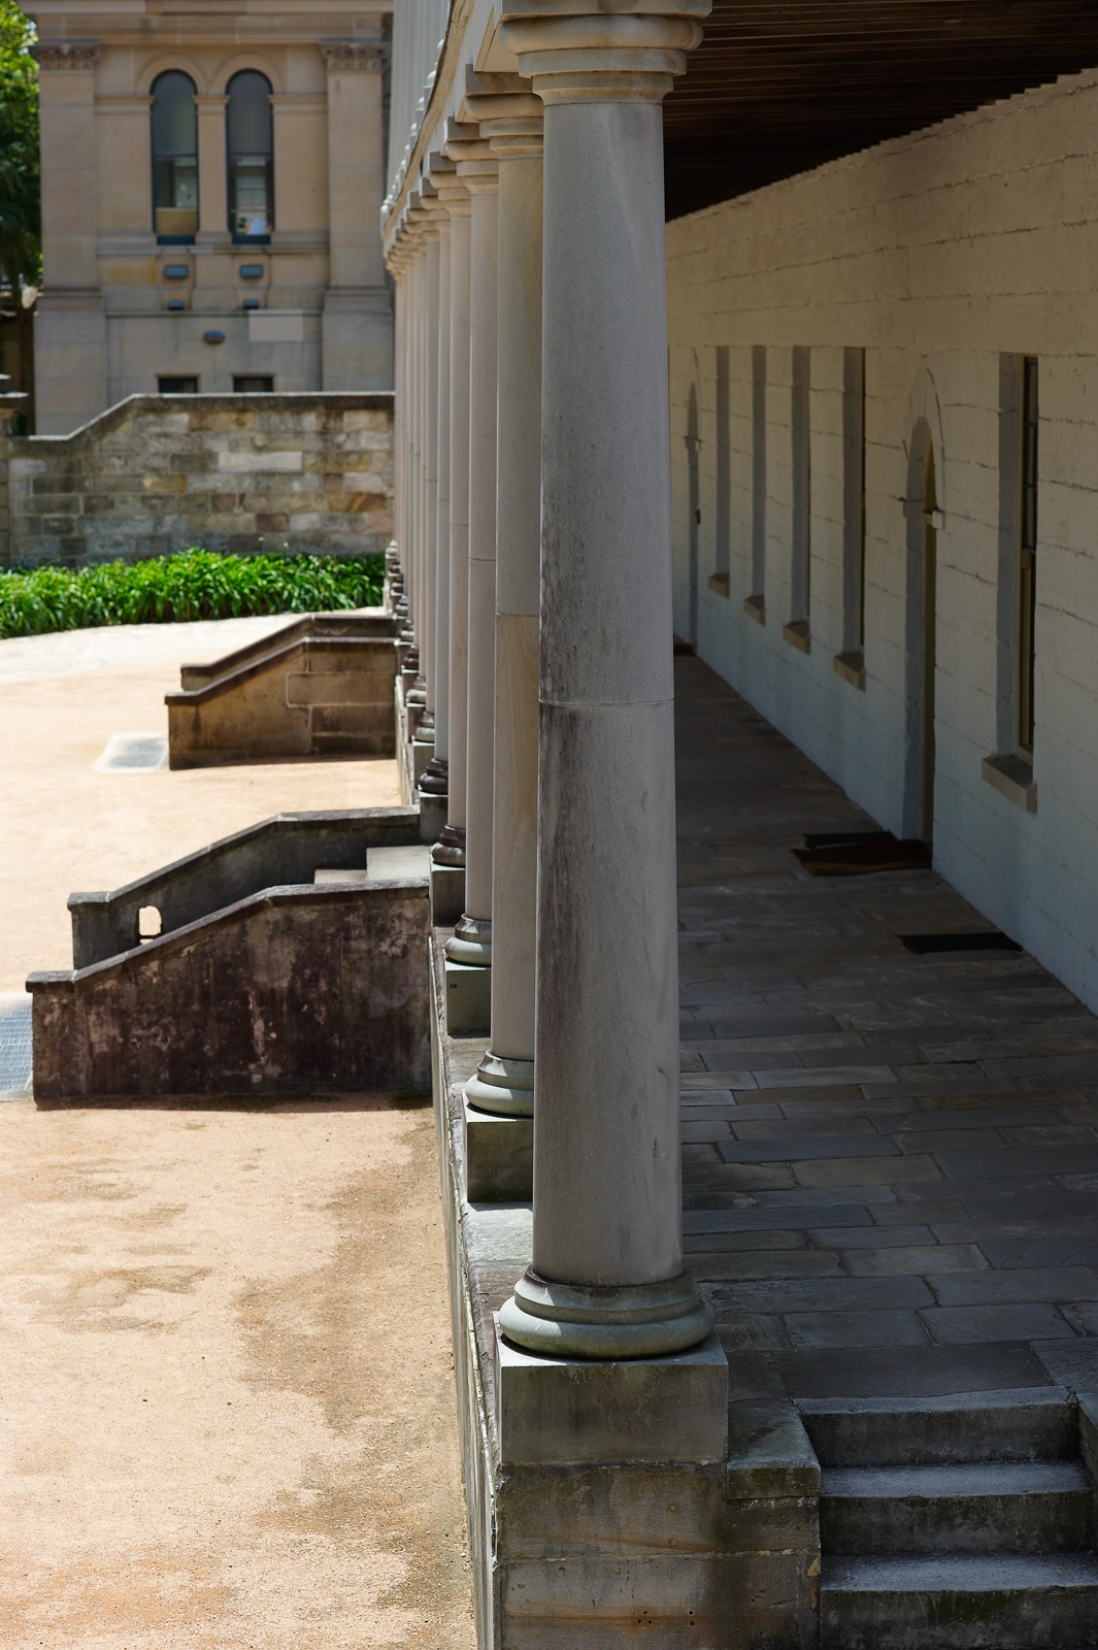 Colonnaded verandah on colonial era building.